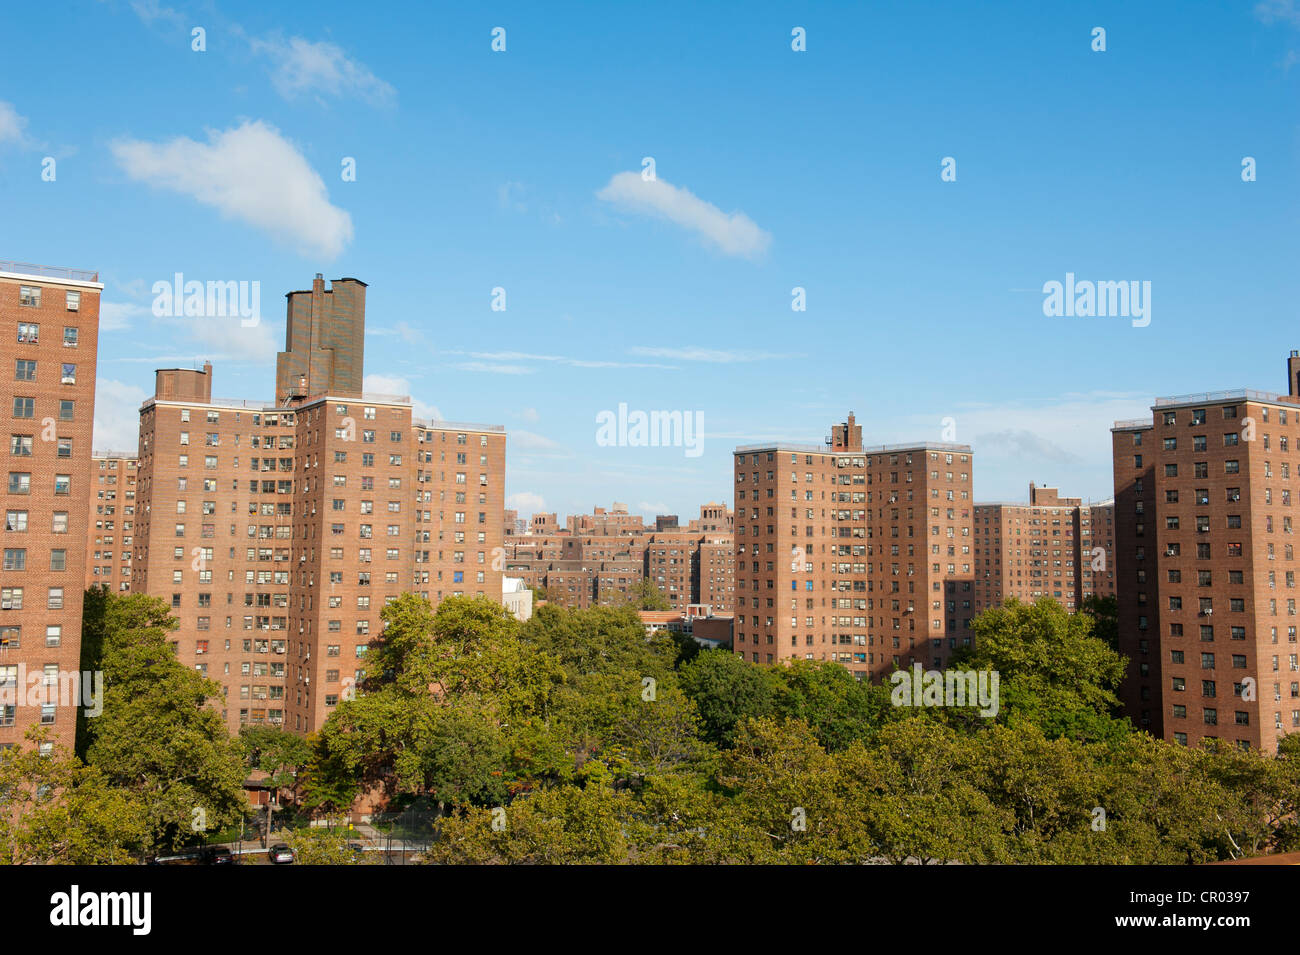 Social housing, Governor Alfred E. Smith Houses, Two Bridges Neighborhood, Lower East Side district, Manhattan, - Stock Image